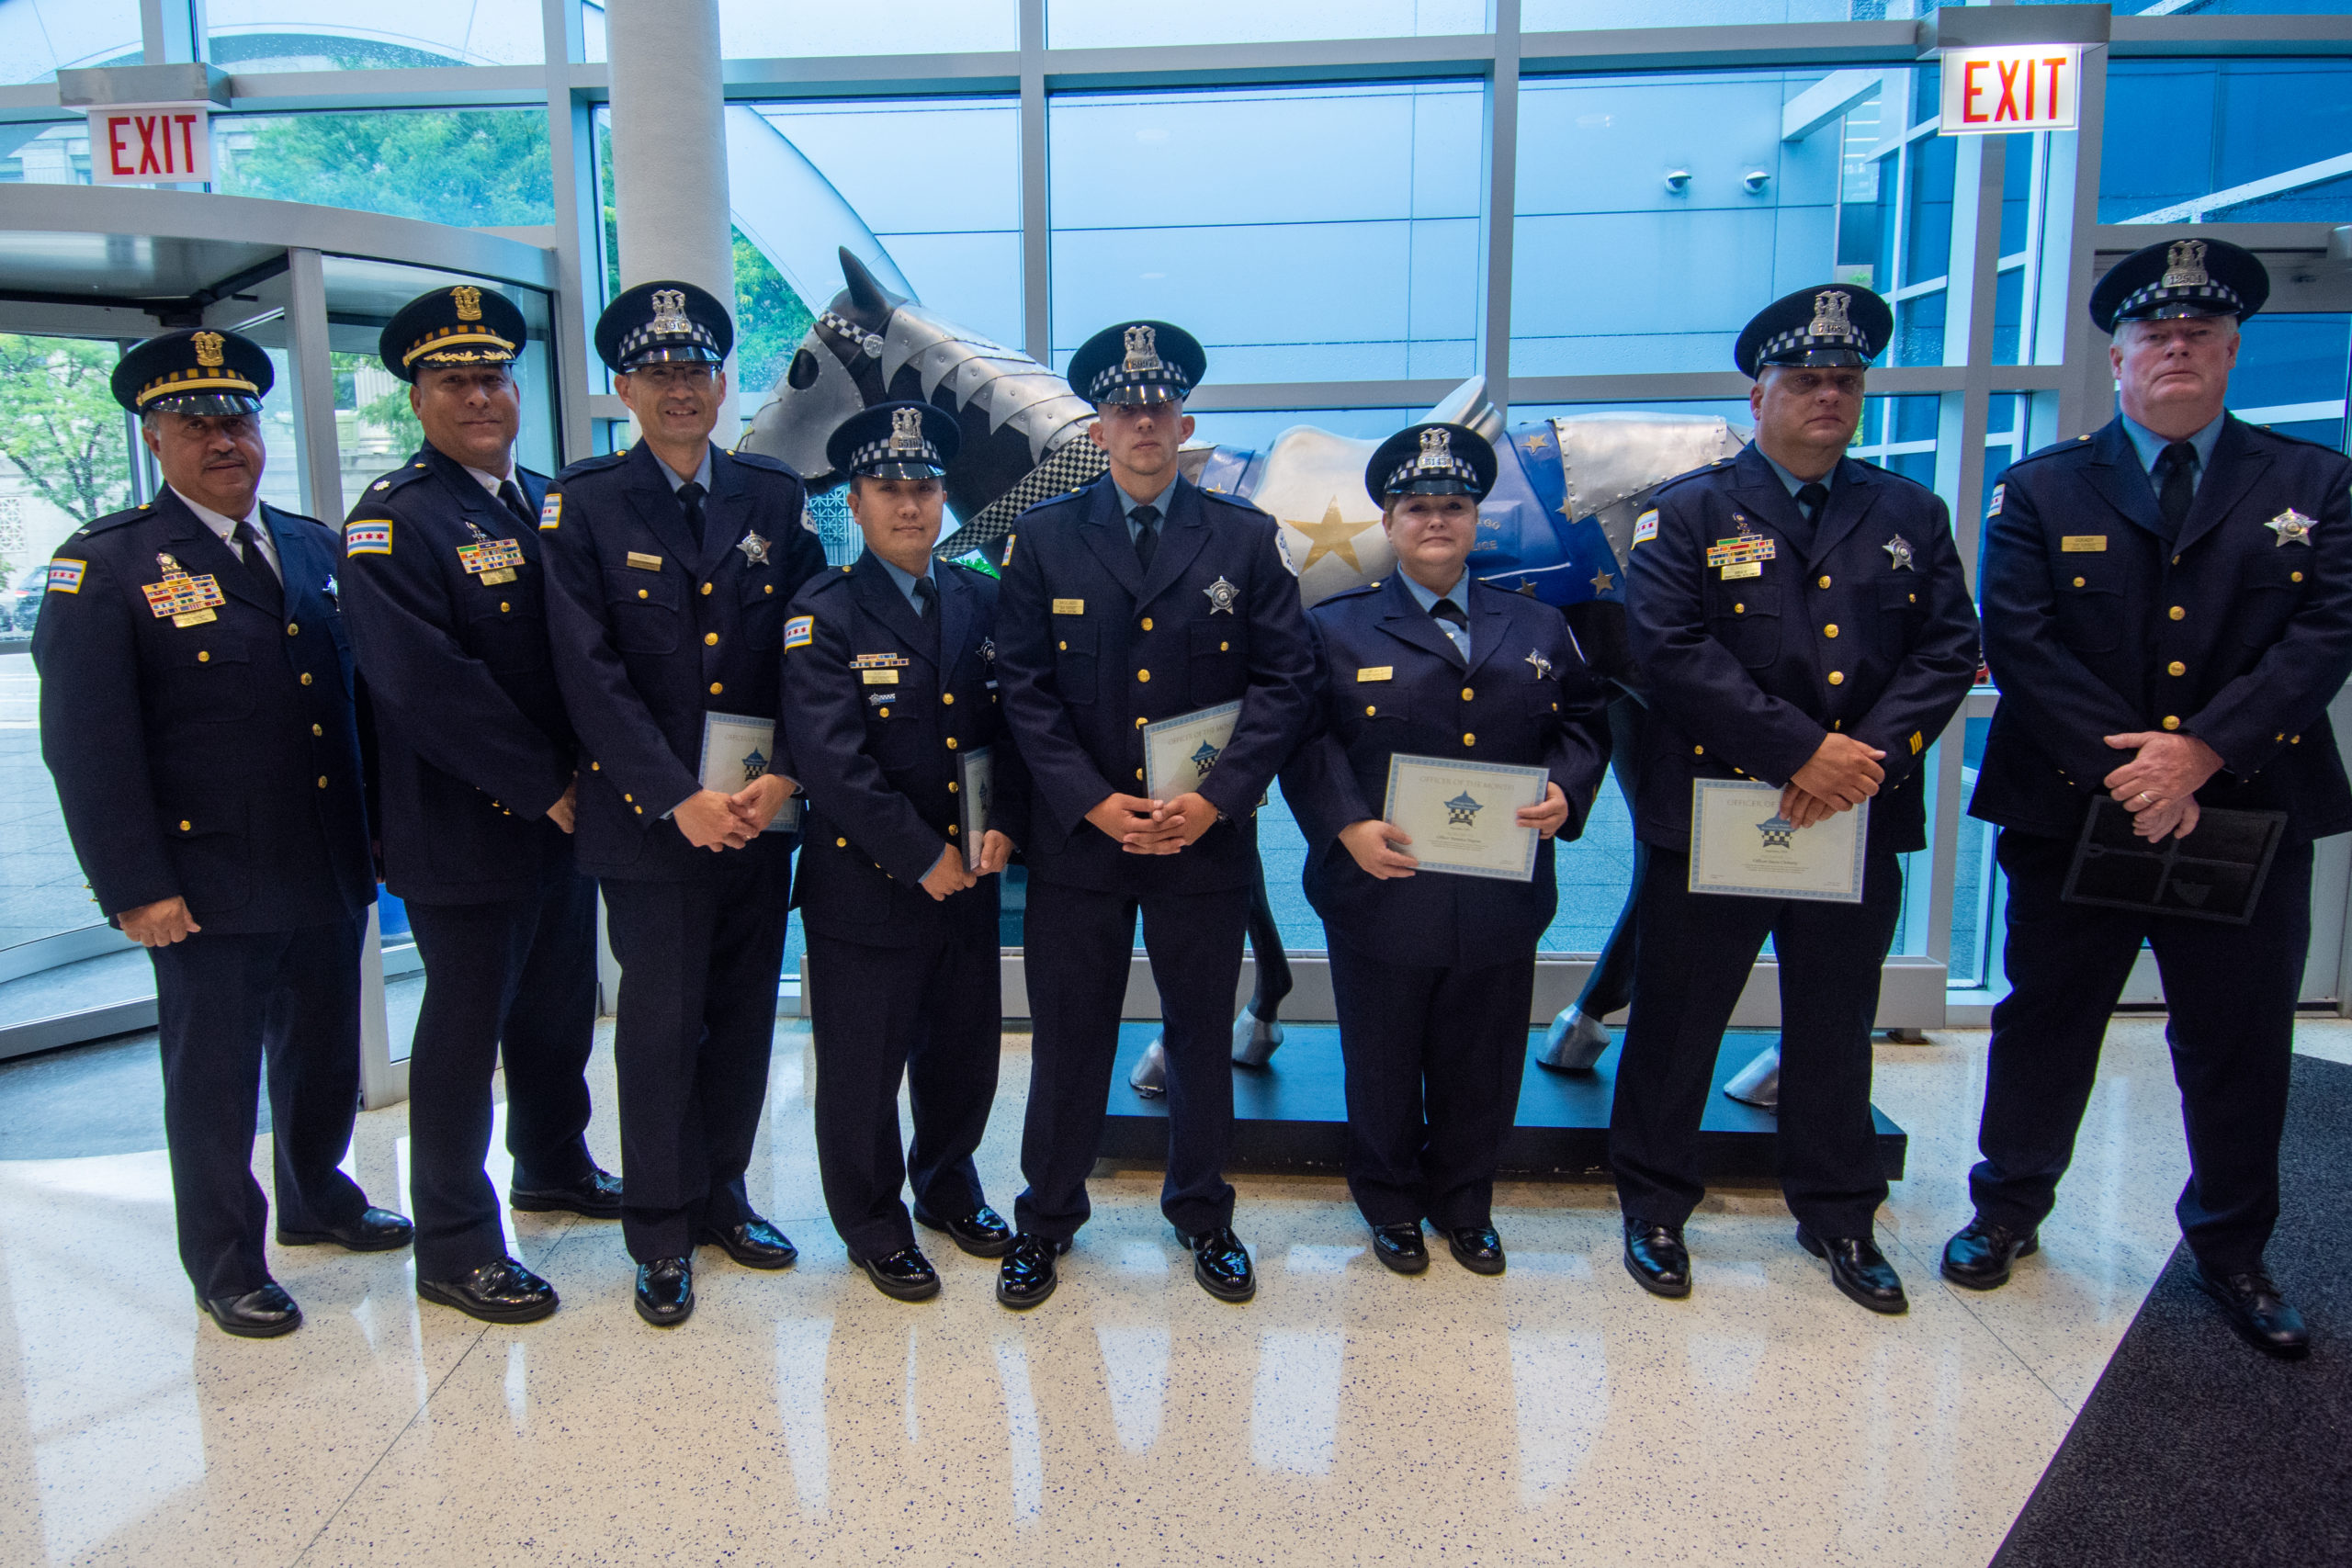 The Chicago Police Memorial Foundation will honor six Chicago Police officers who heroically engaged in a gun-battle.